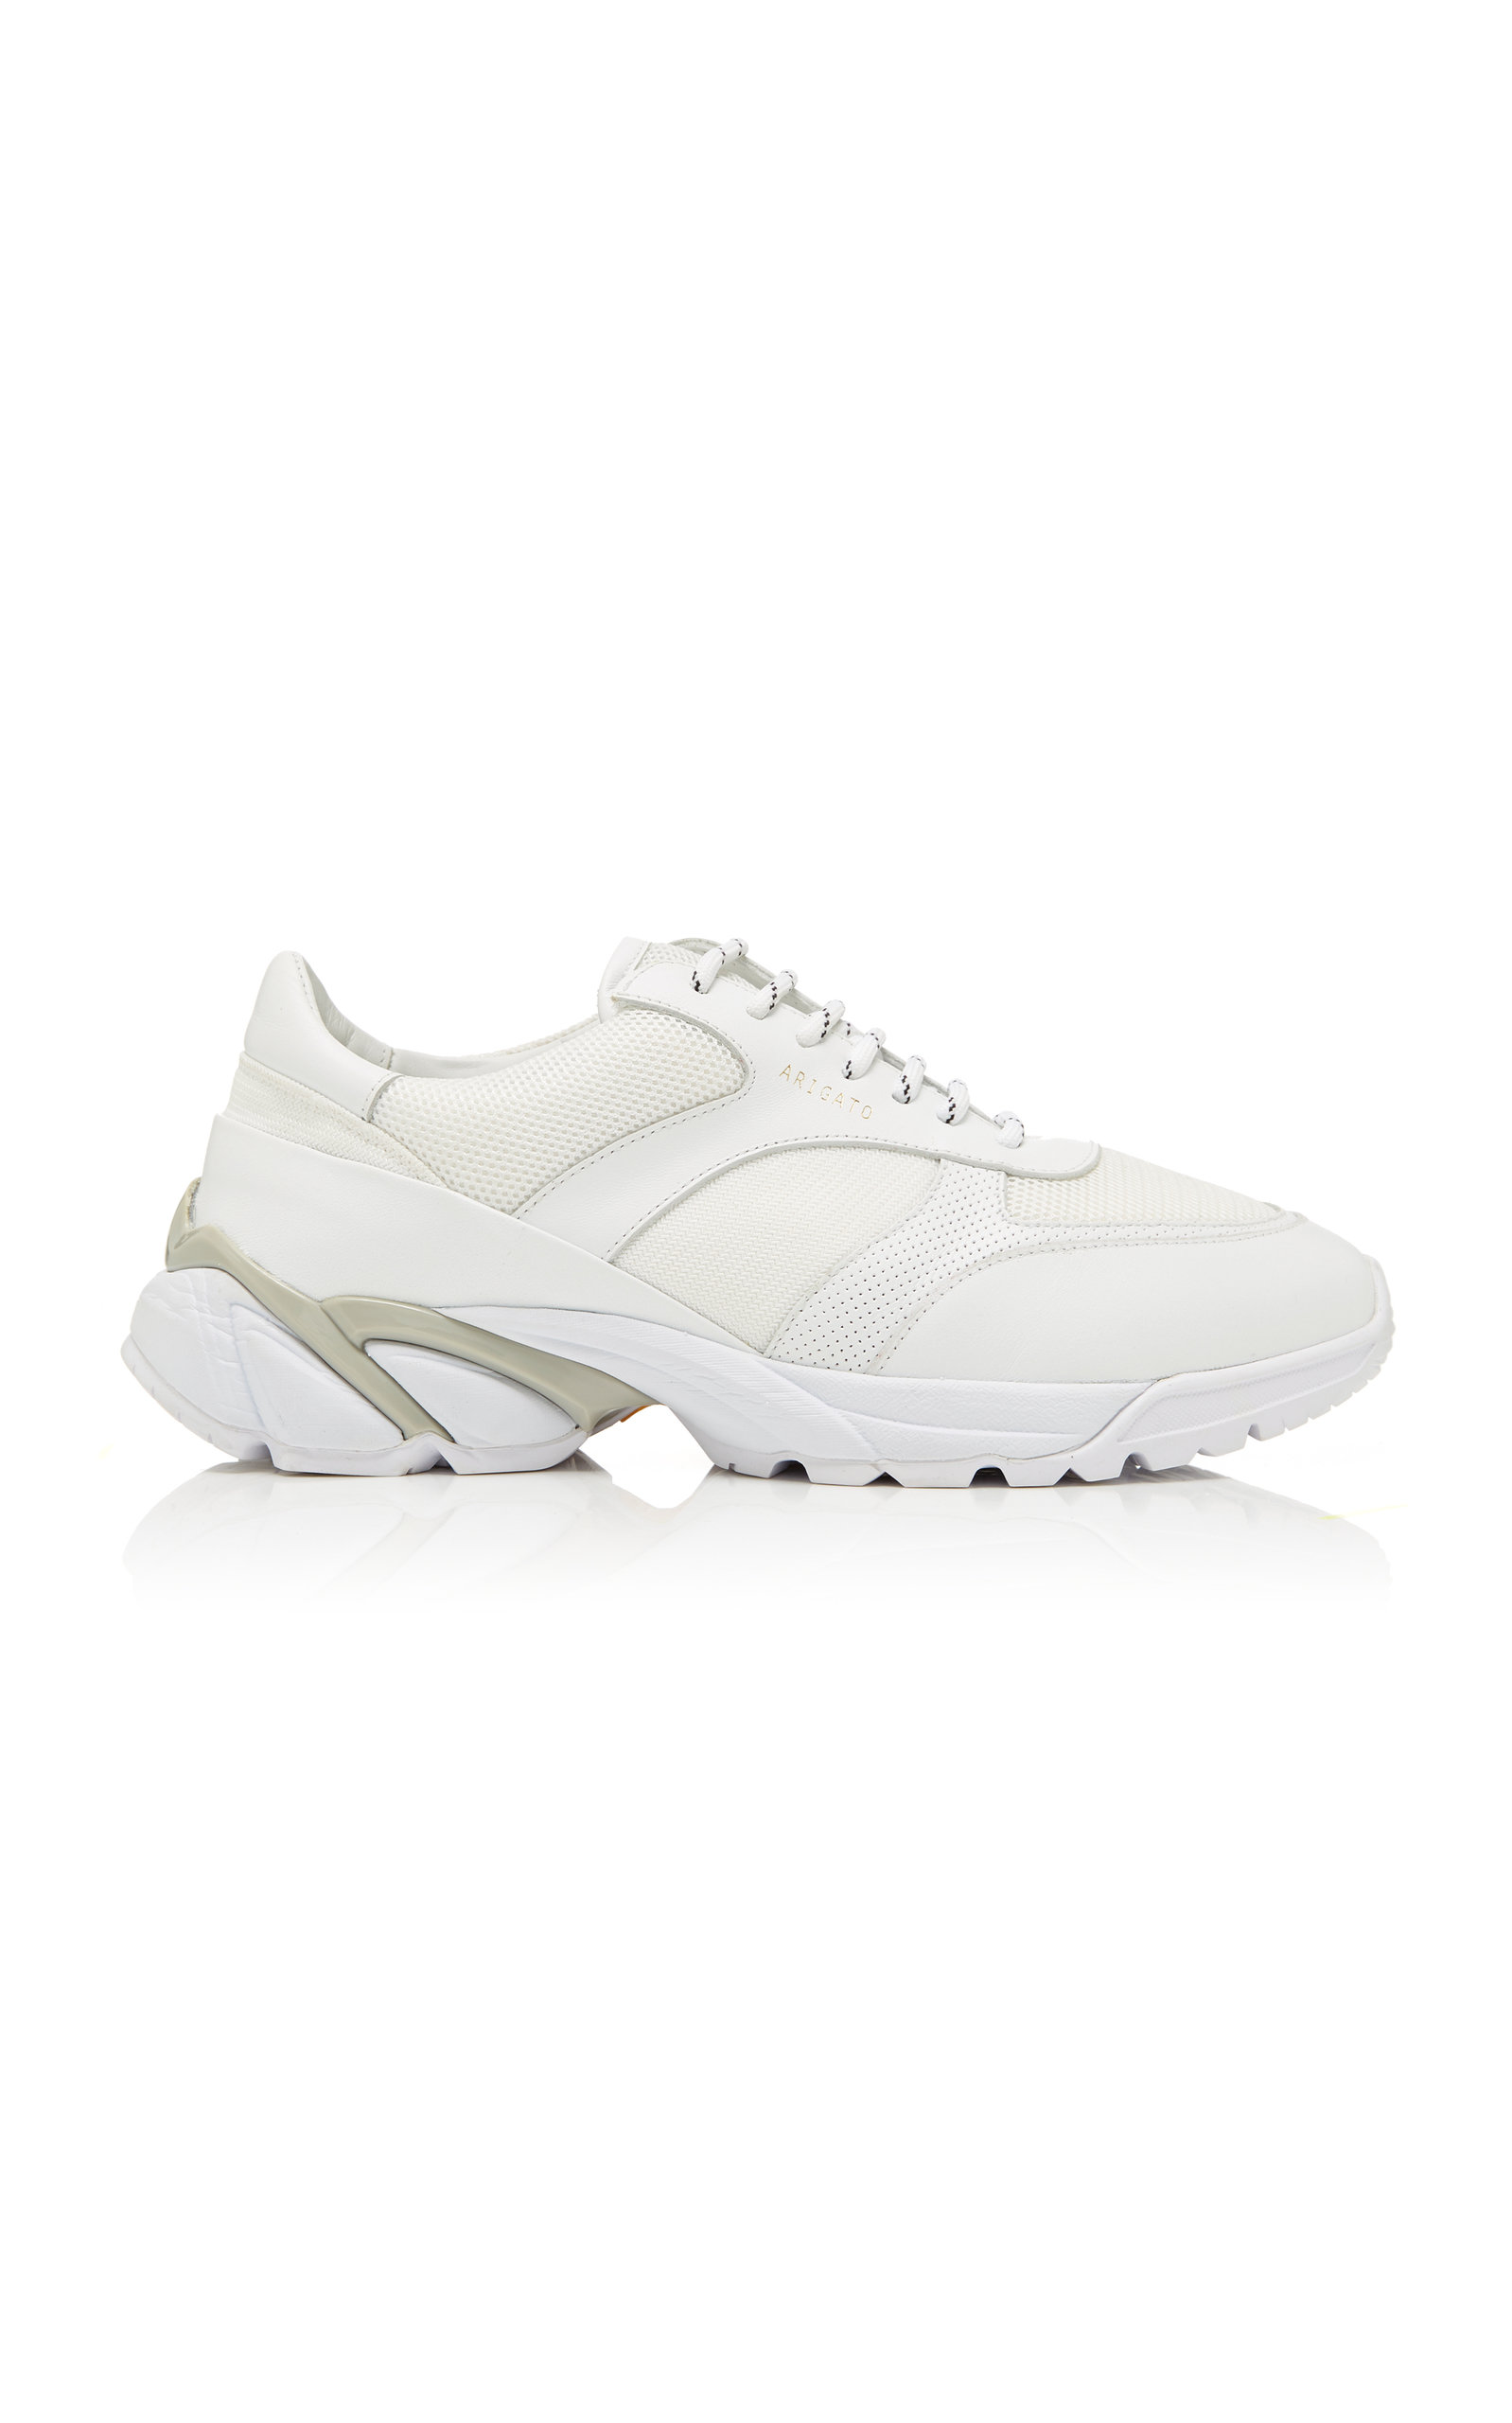 Tech Runner Core Leather-Trimmed Mesh Sneakers Axel Arigato Lwgnuh9